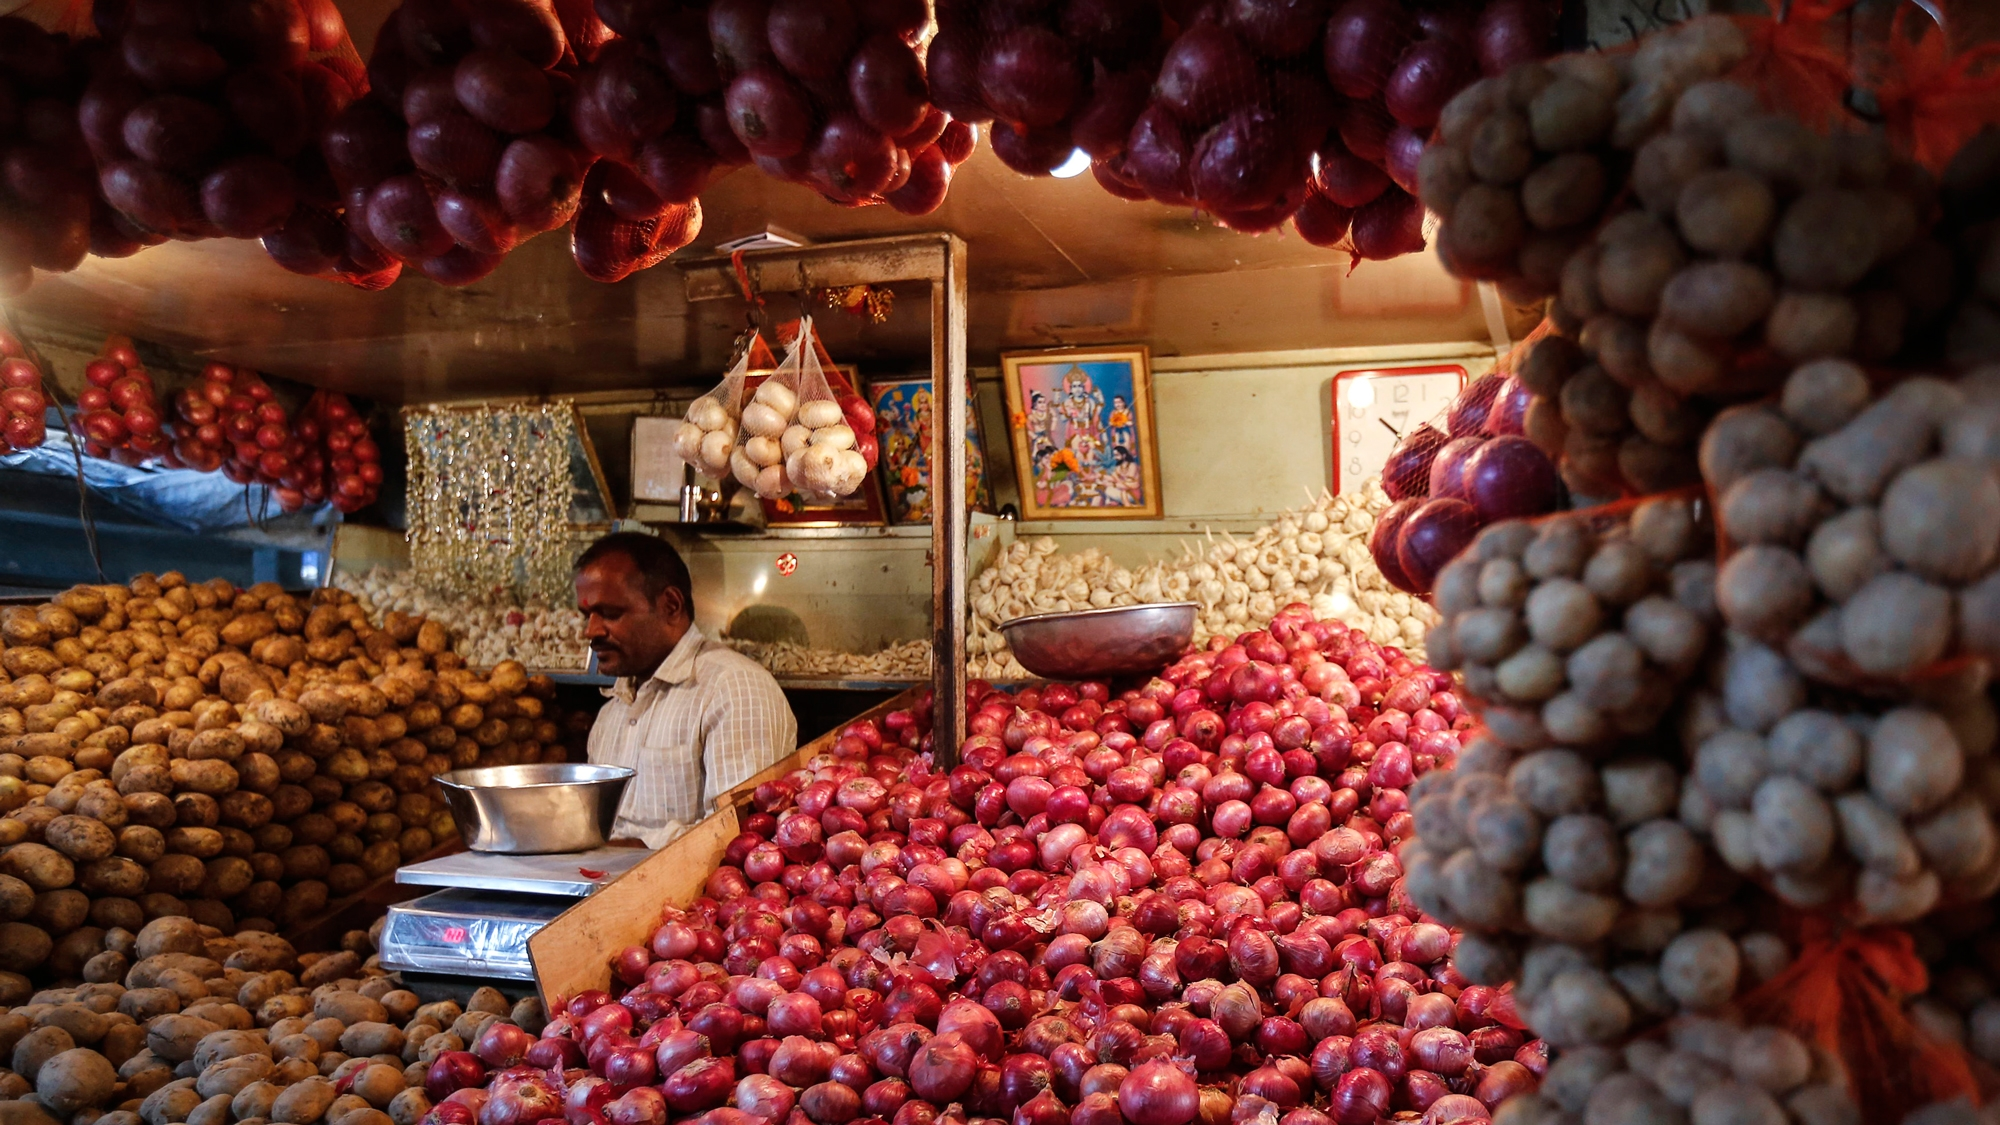 Wholesale Price Index Inflation Rises to 2.93% in February